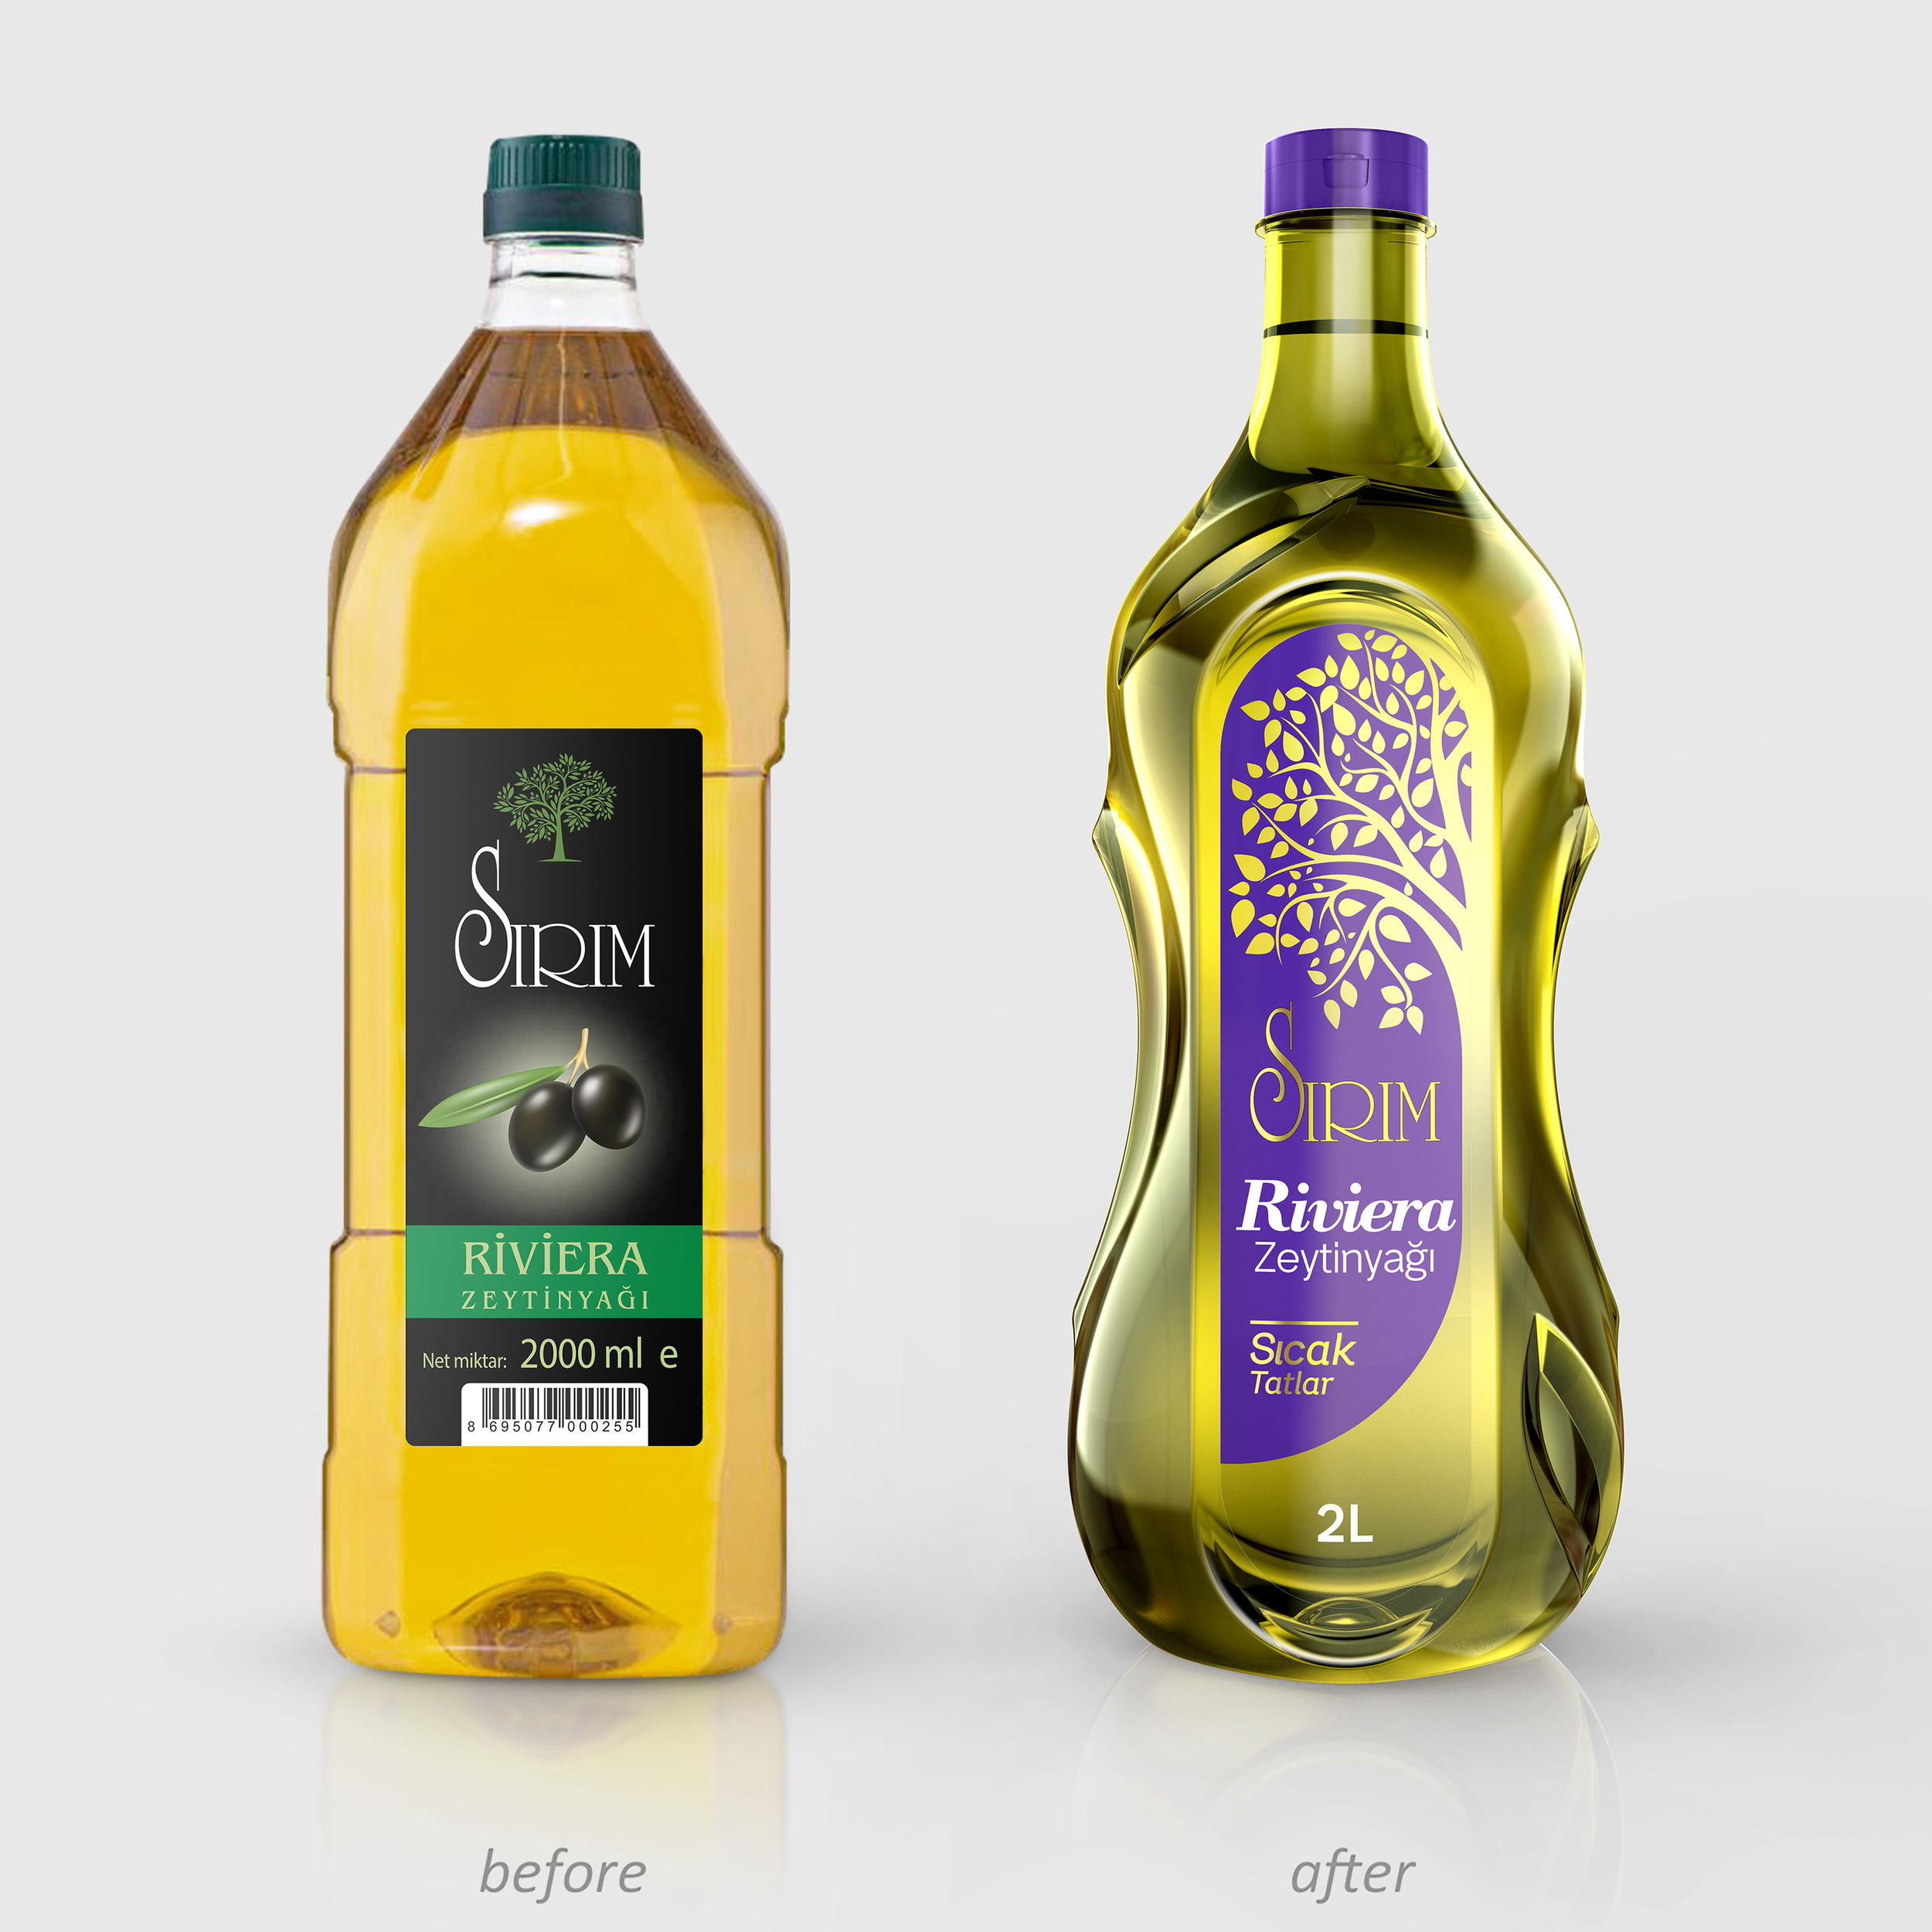 Sirim Olive Oil Private Label Packaging Design And Rebranding From Turkey / World Brand Design Society